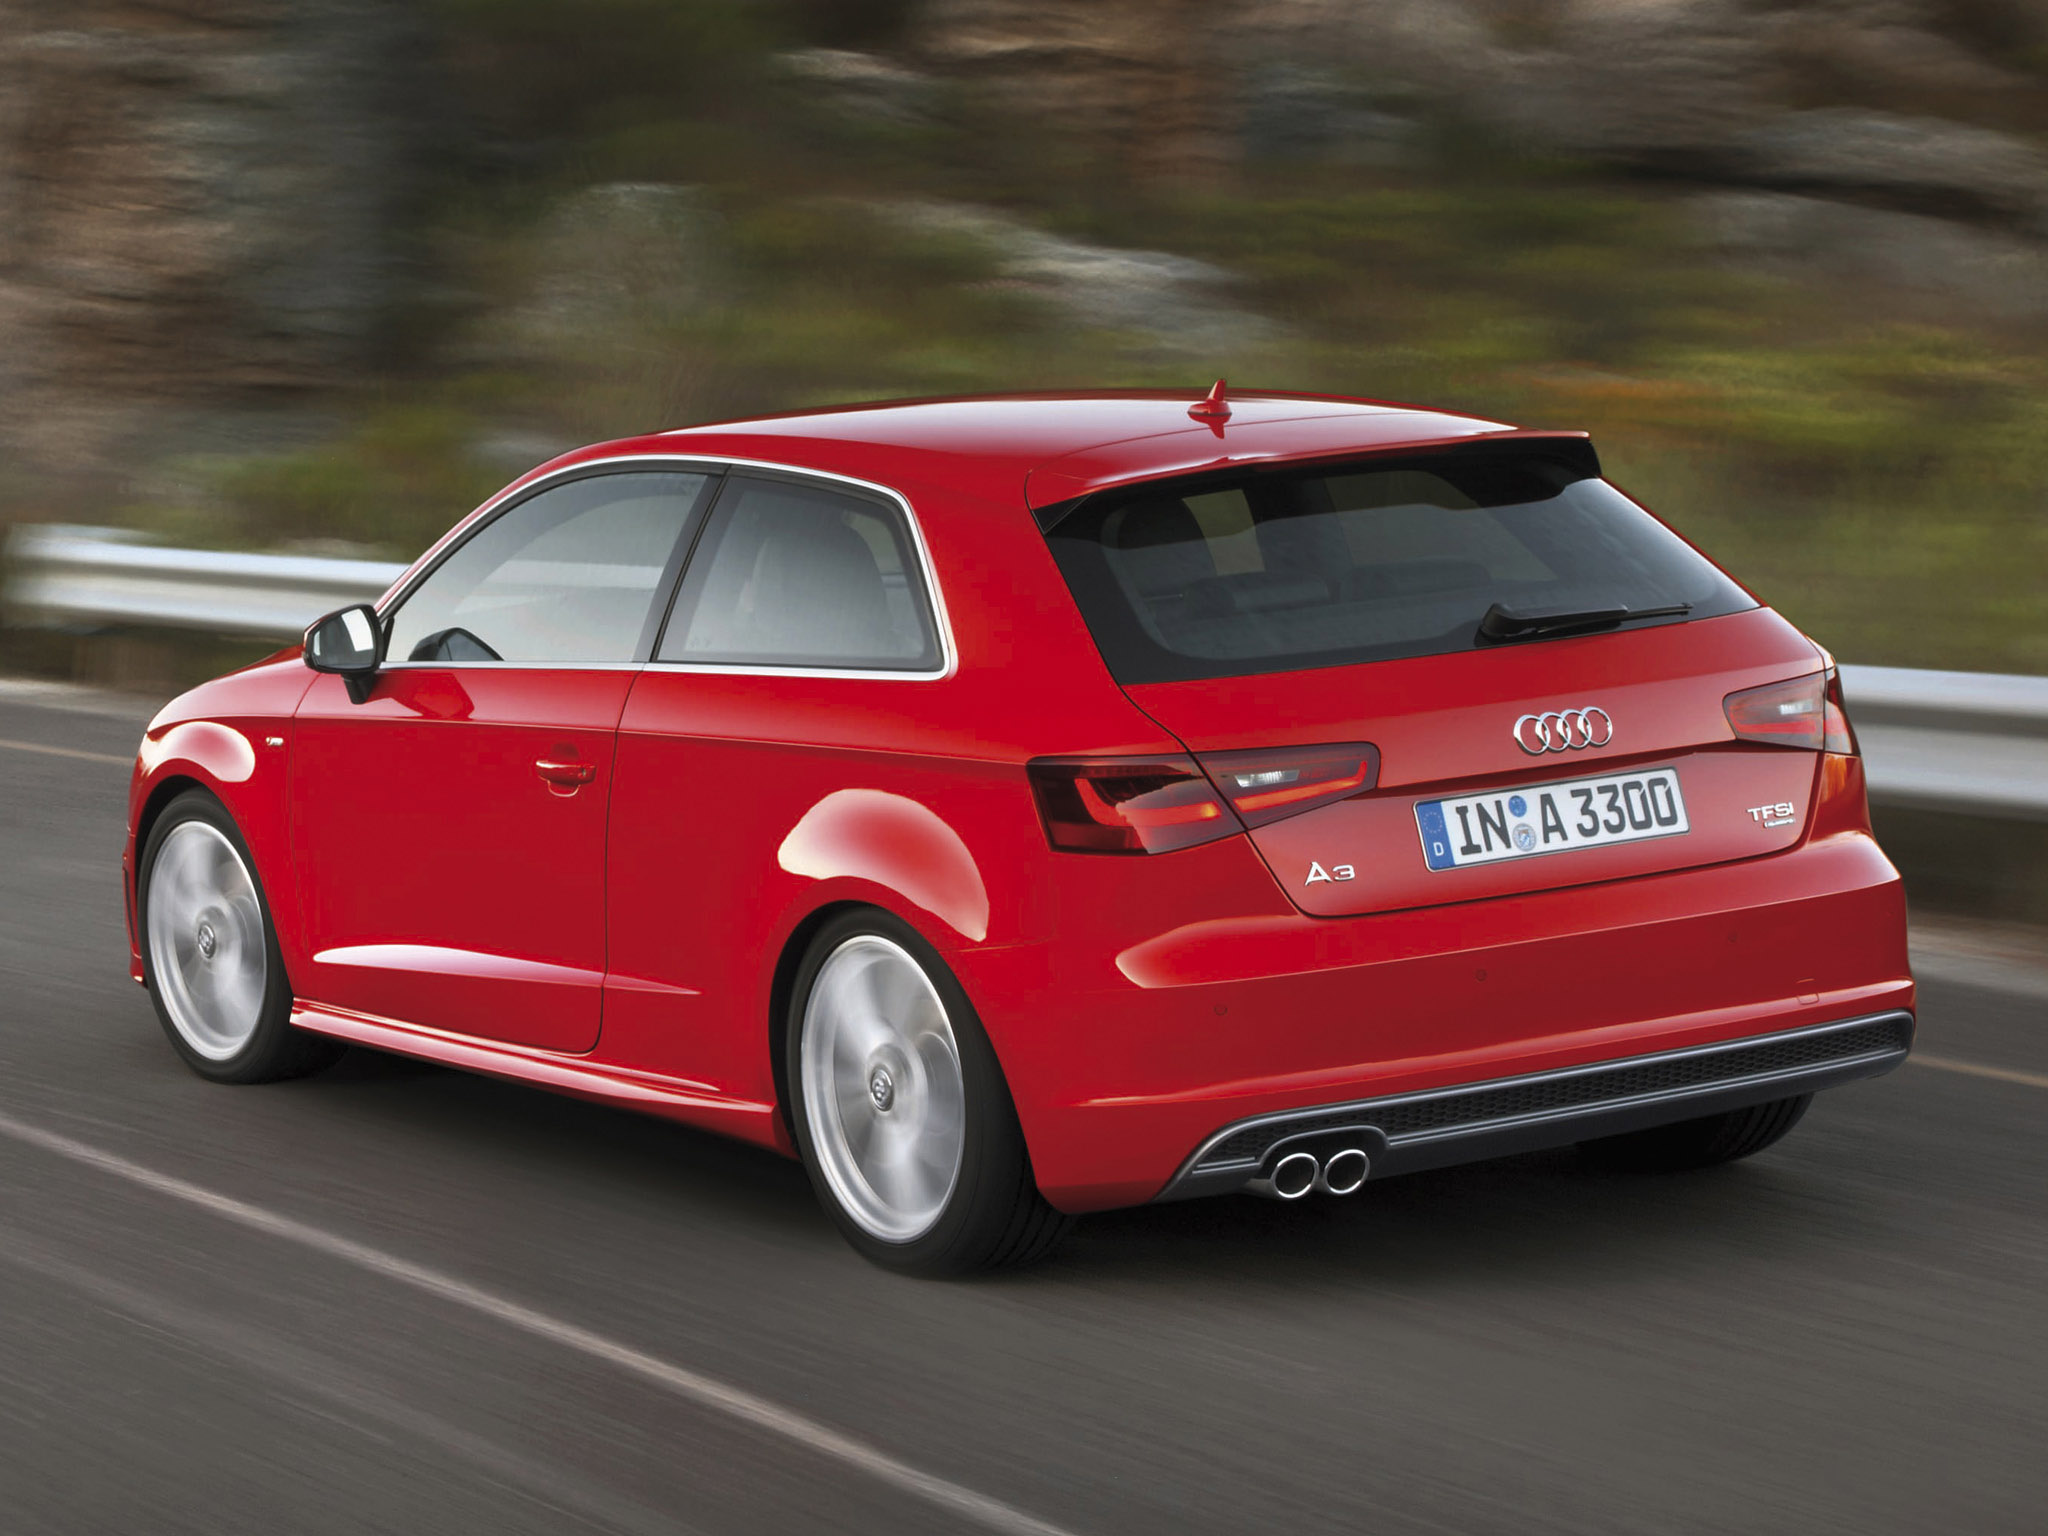 audi a3 1 8t s line 2012 audi a3 1 8t s line 2012 photo 18 car in pictures car photo gallery. Black Bedroom Furniture Sets. Home Design Ideas